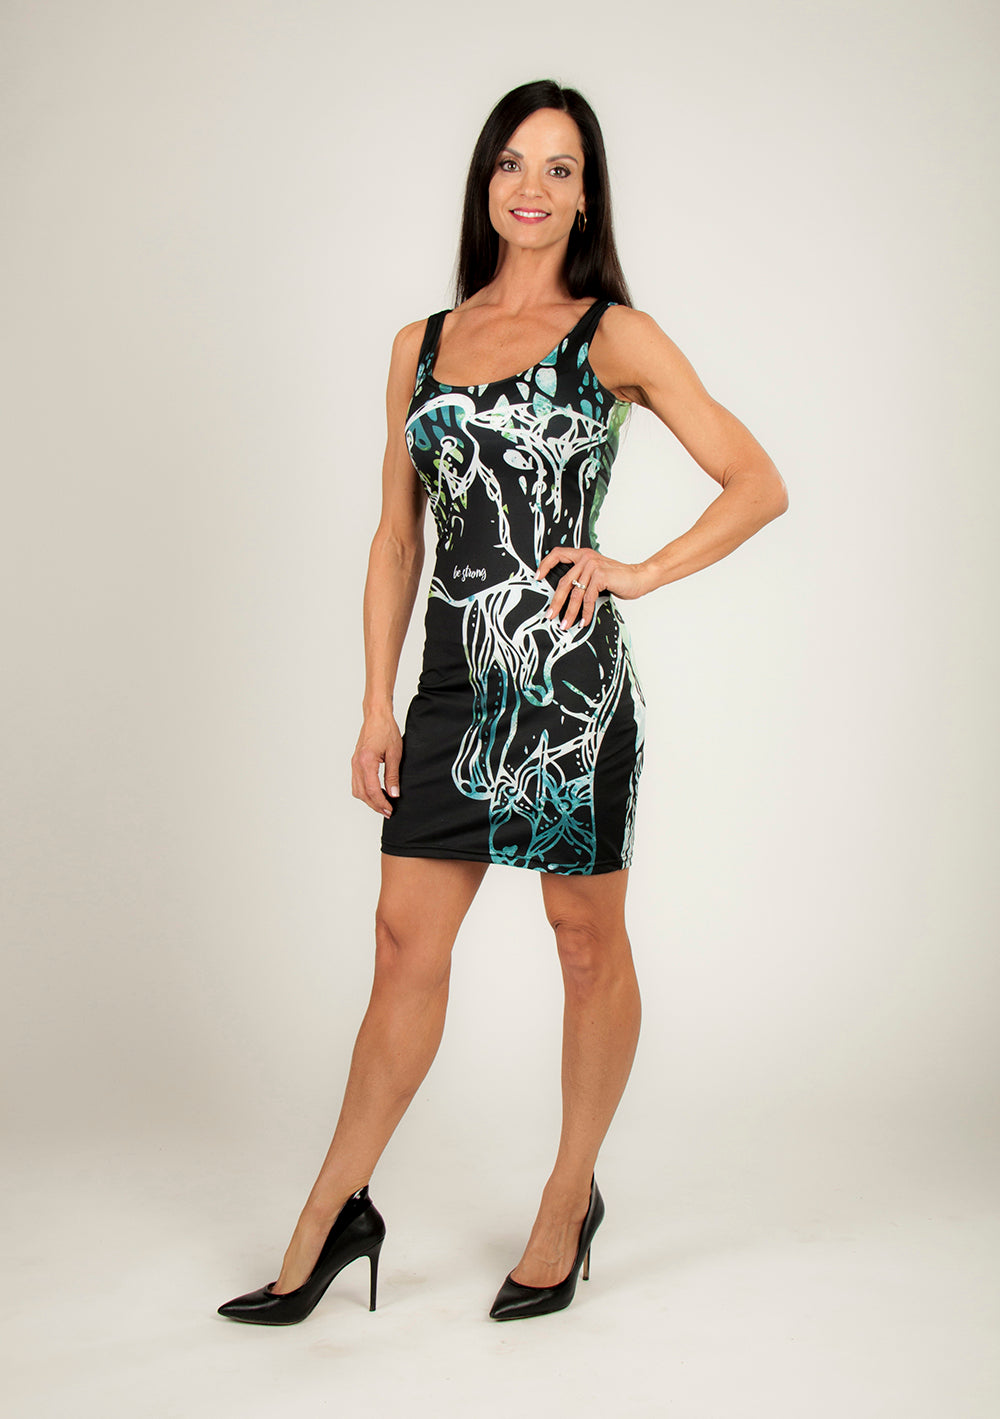 Be Strong Bodycon Dress - Wearable Art by Kristina Benson Art (Elephant illustration on acrylic painting)